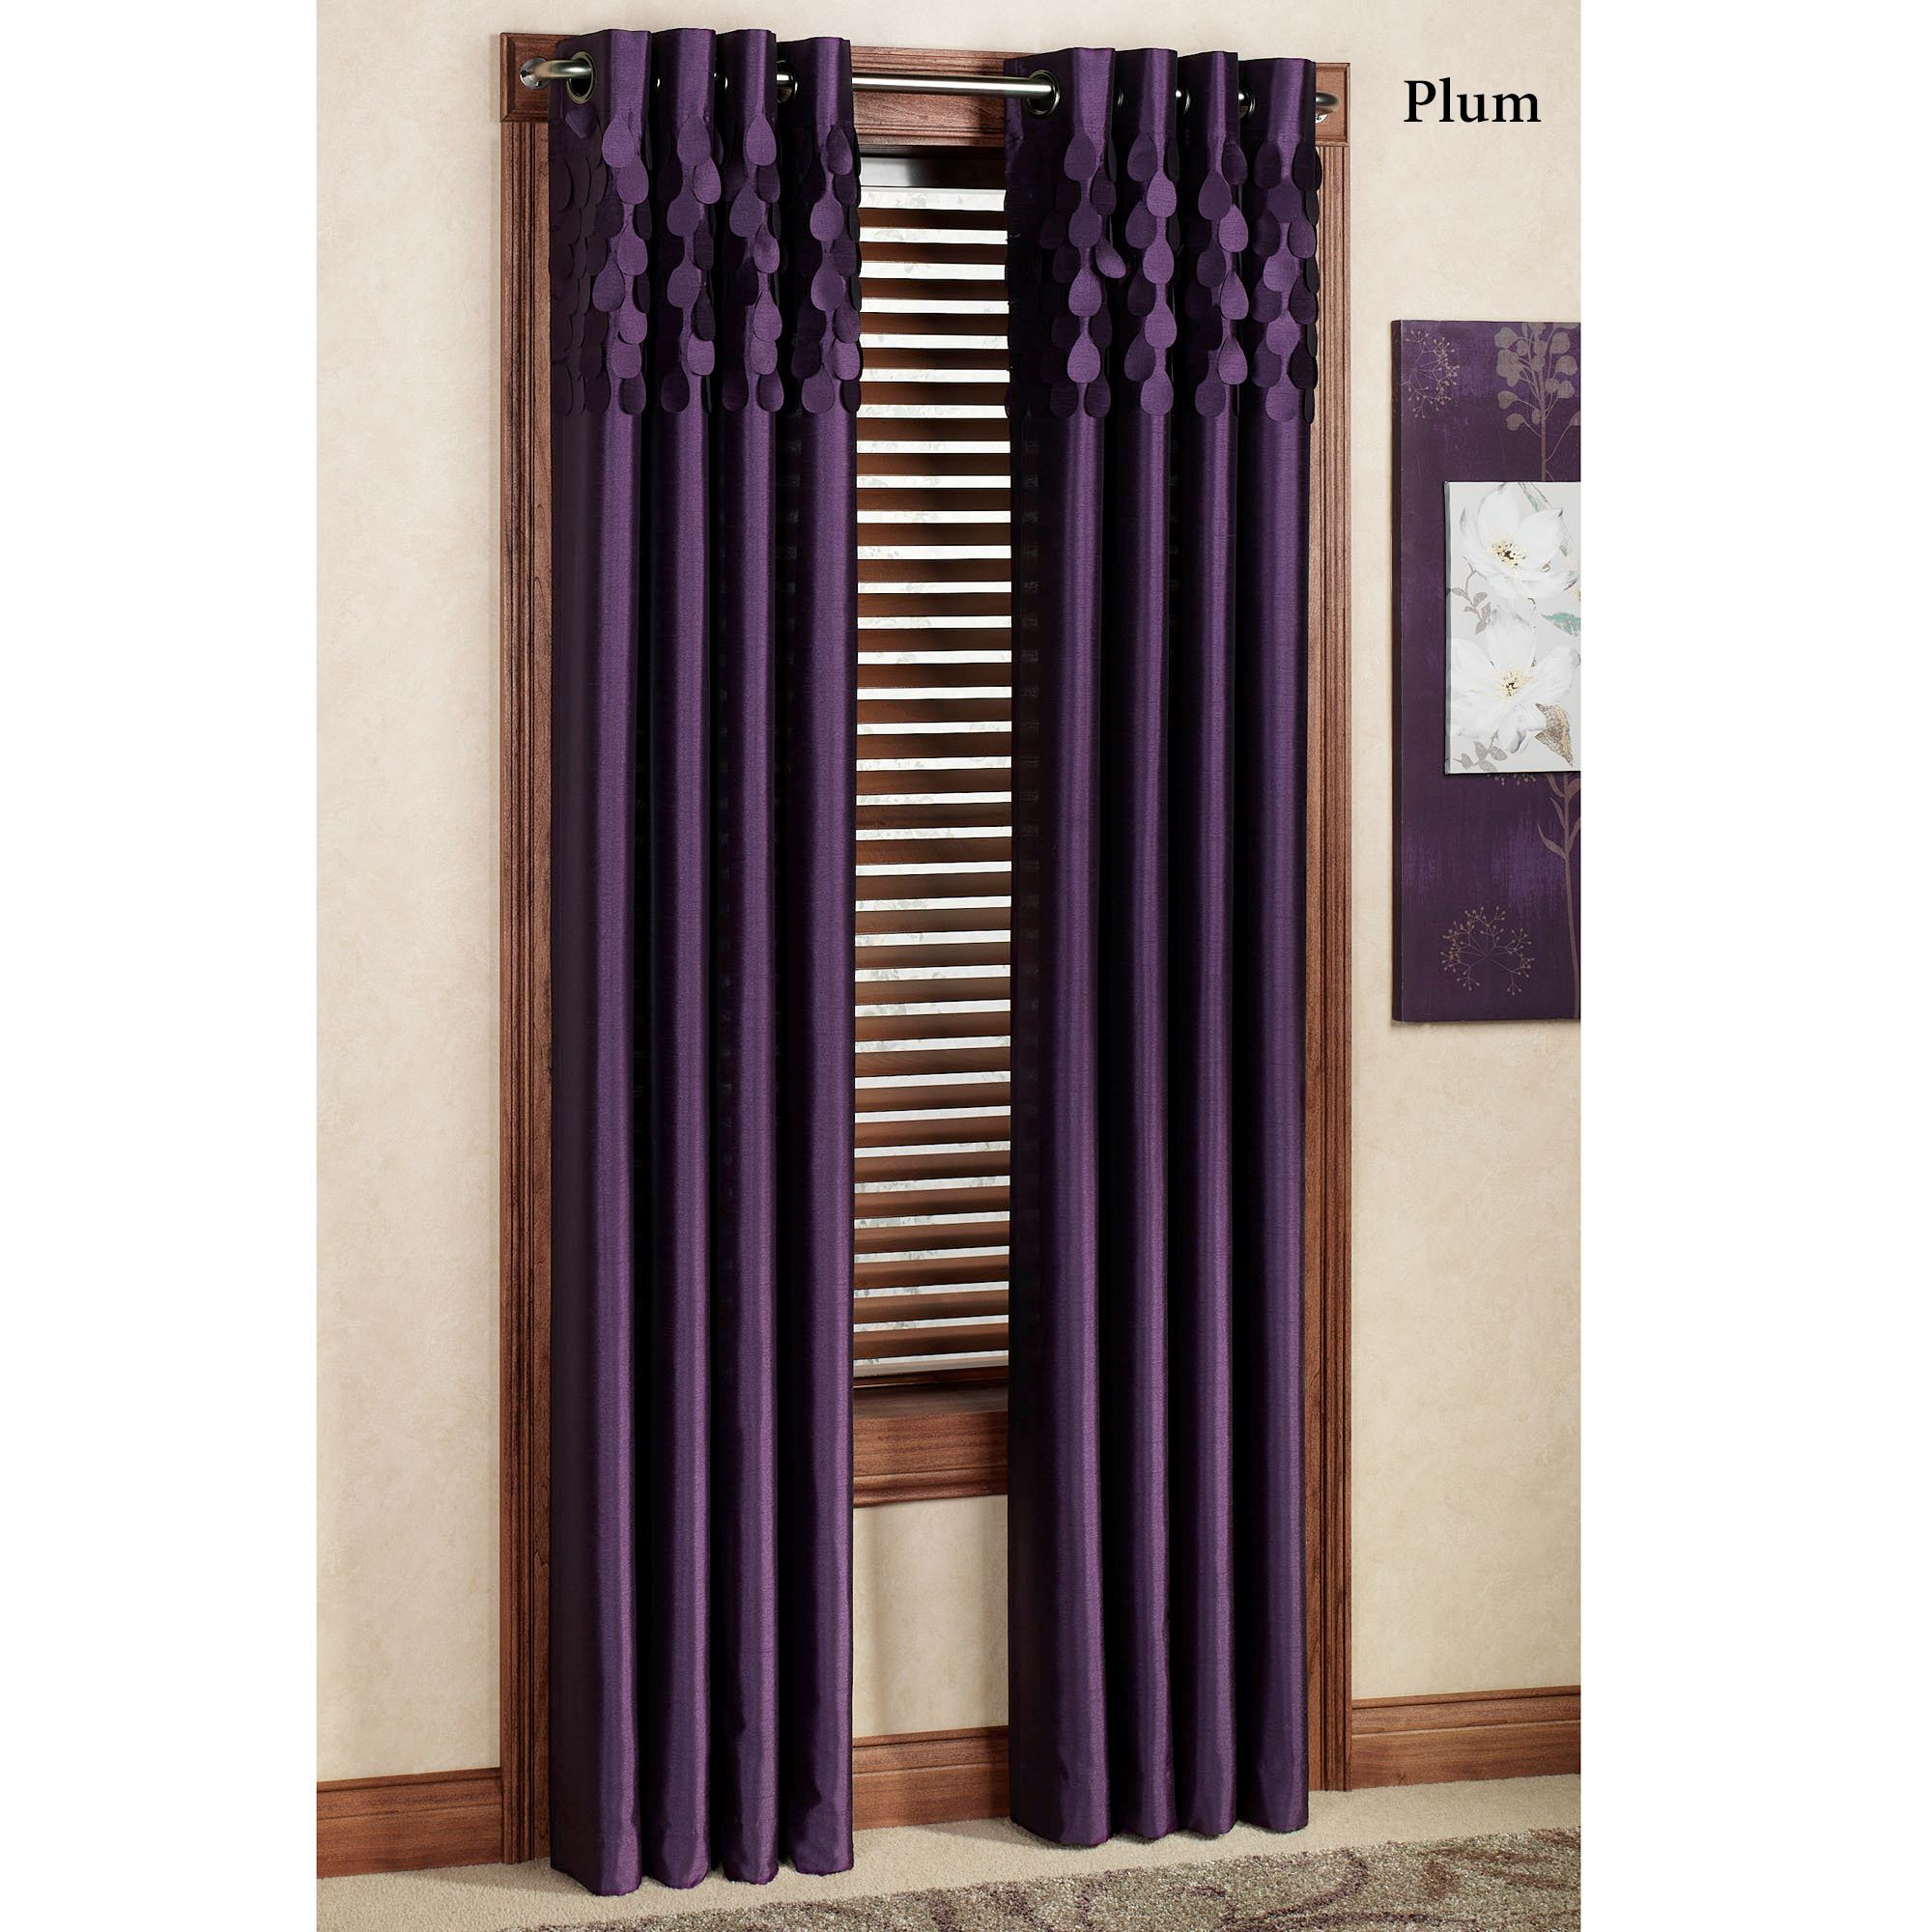 or eclipse bedroom panel curtain the curtains curtainspurple full thermal of concept blackout beautiful purple energy samara for picture size drapes velvet efficient